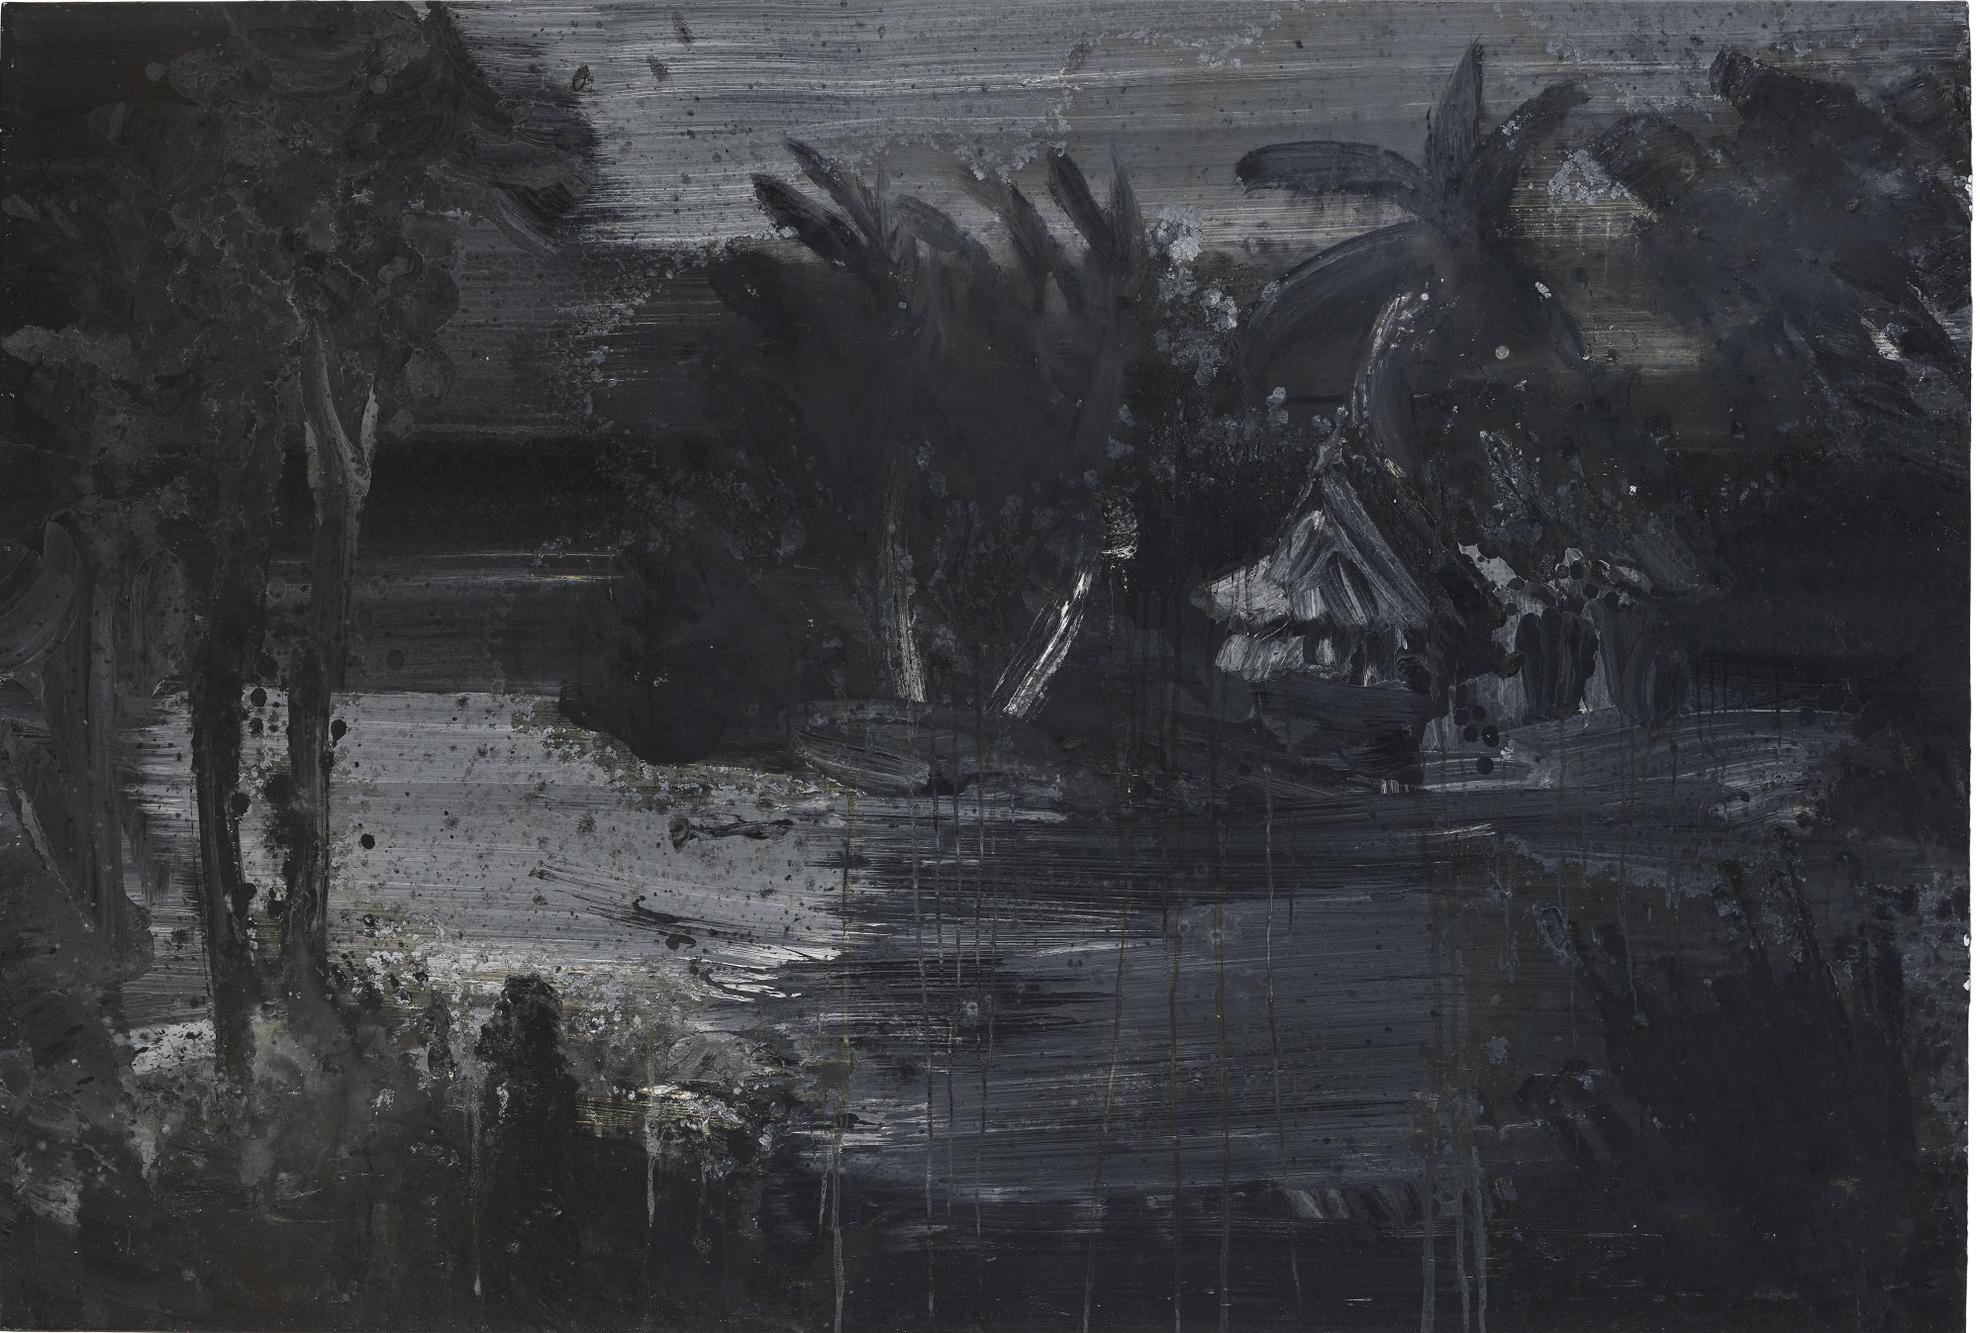 Yan Pei-Ming-International Landscape #5-1998